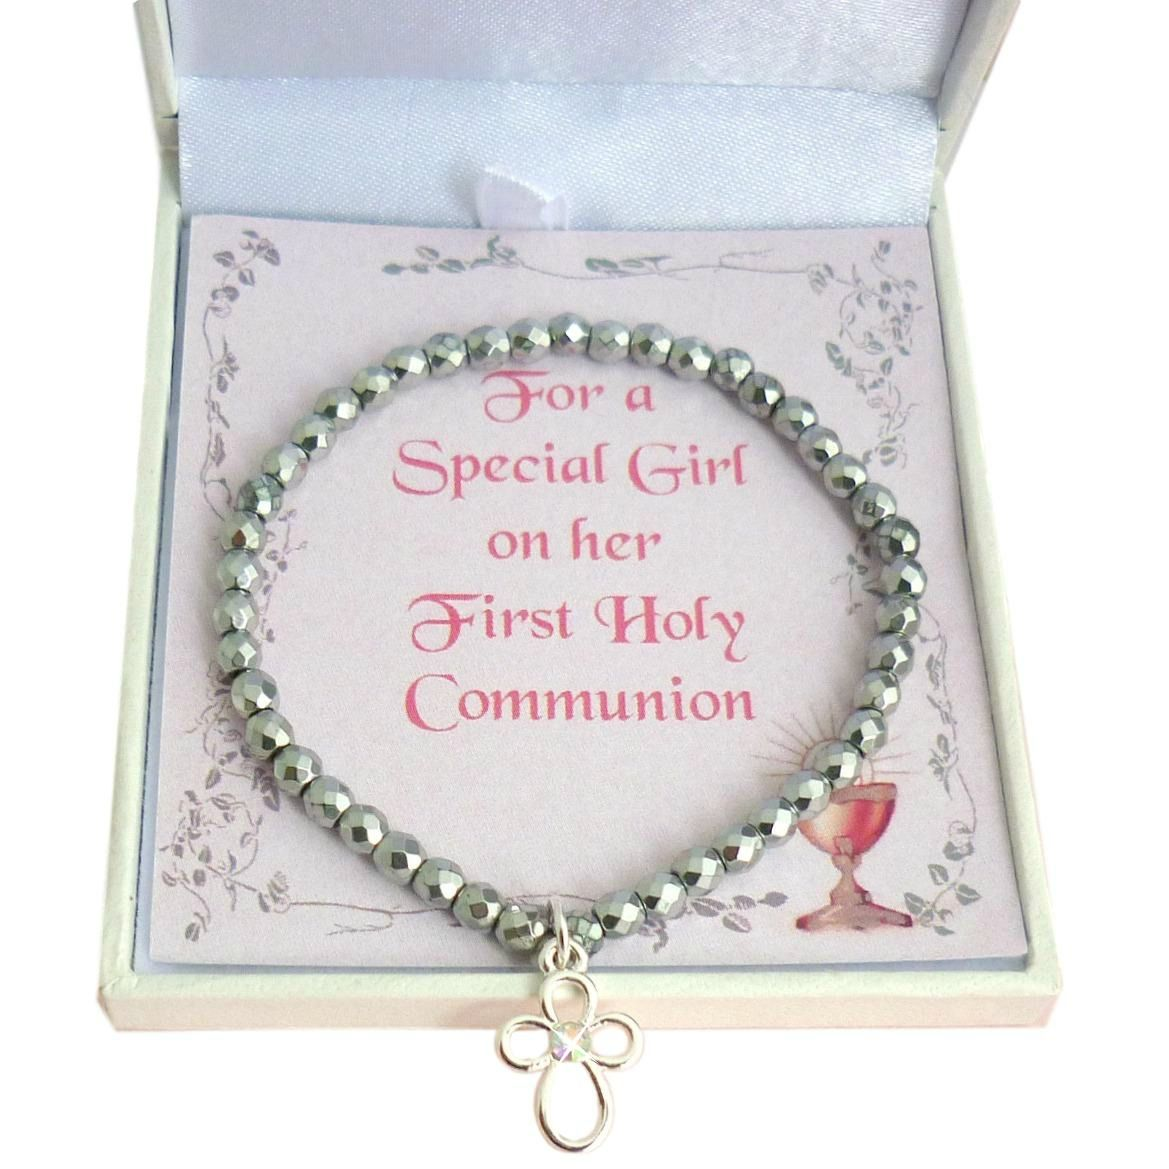 0e62f34a64e726 First Holy Communion Bracelet with Open Cross Charm & White Hemetite Beads